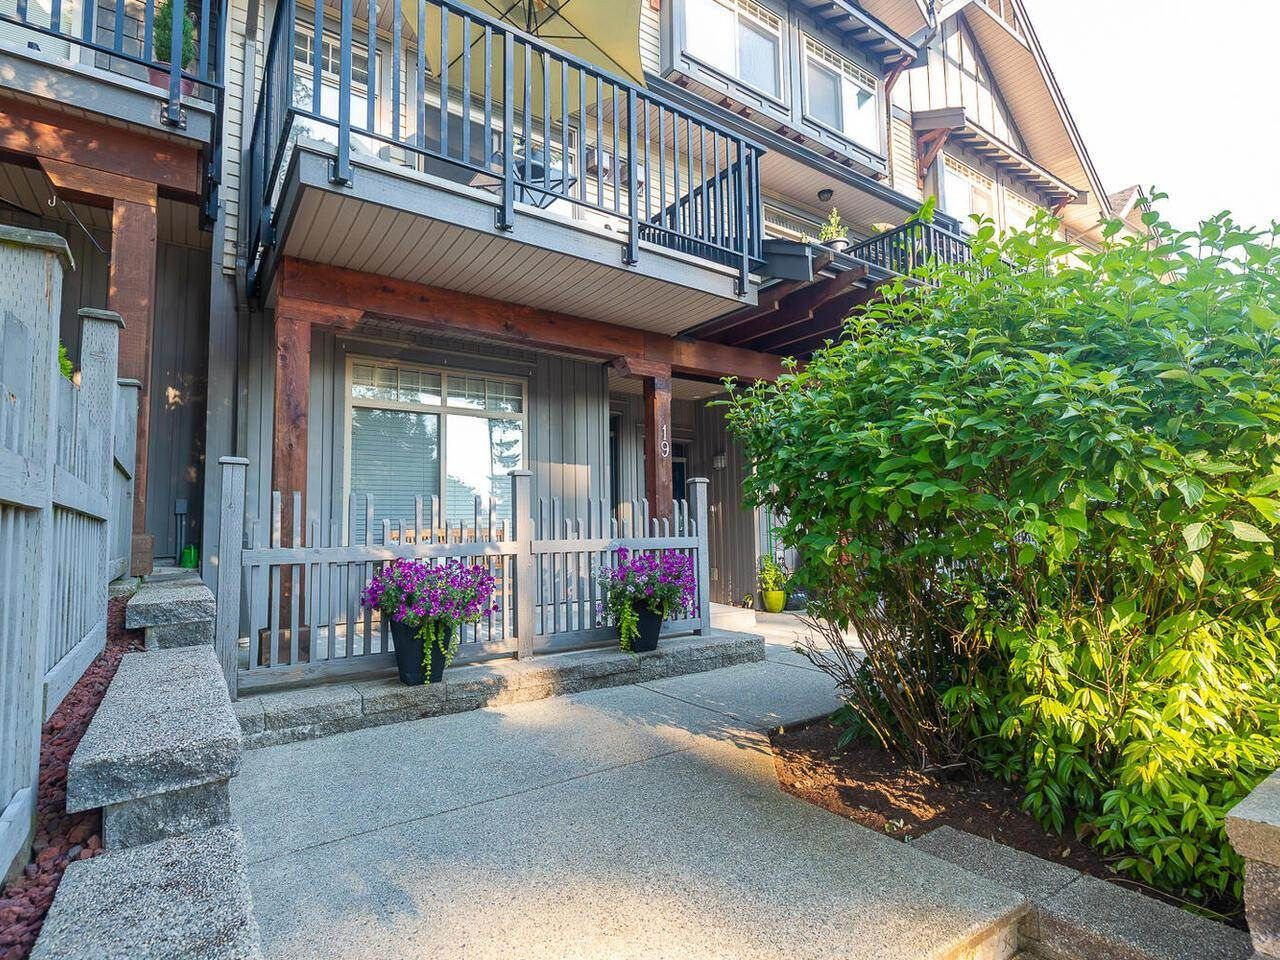 """Main Photo: 19 55 HAWTHORN Drive in Port Moody: Heritage Woods PM Townhouse for sale in """"Cobalt Sky by Parklane"""" : MLS®# R2597938"""